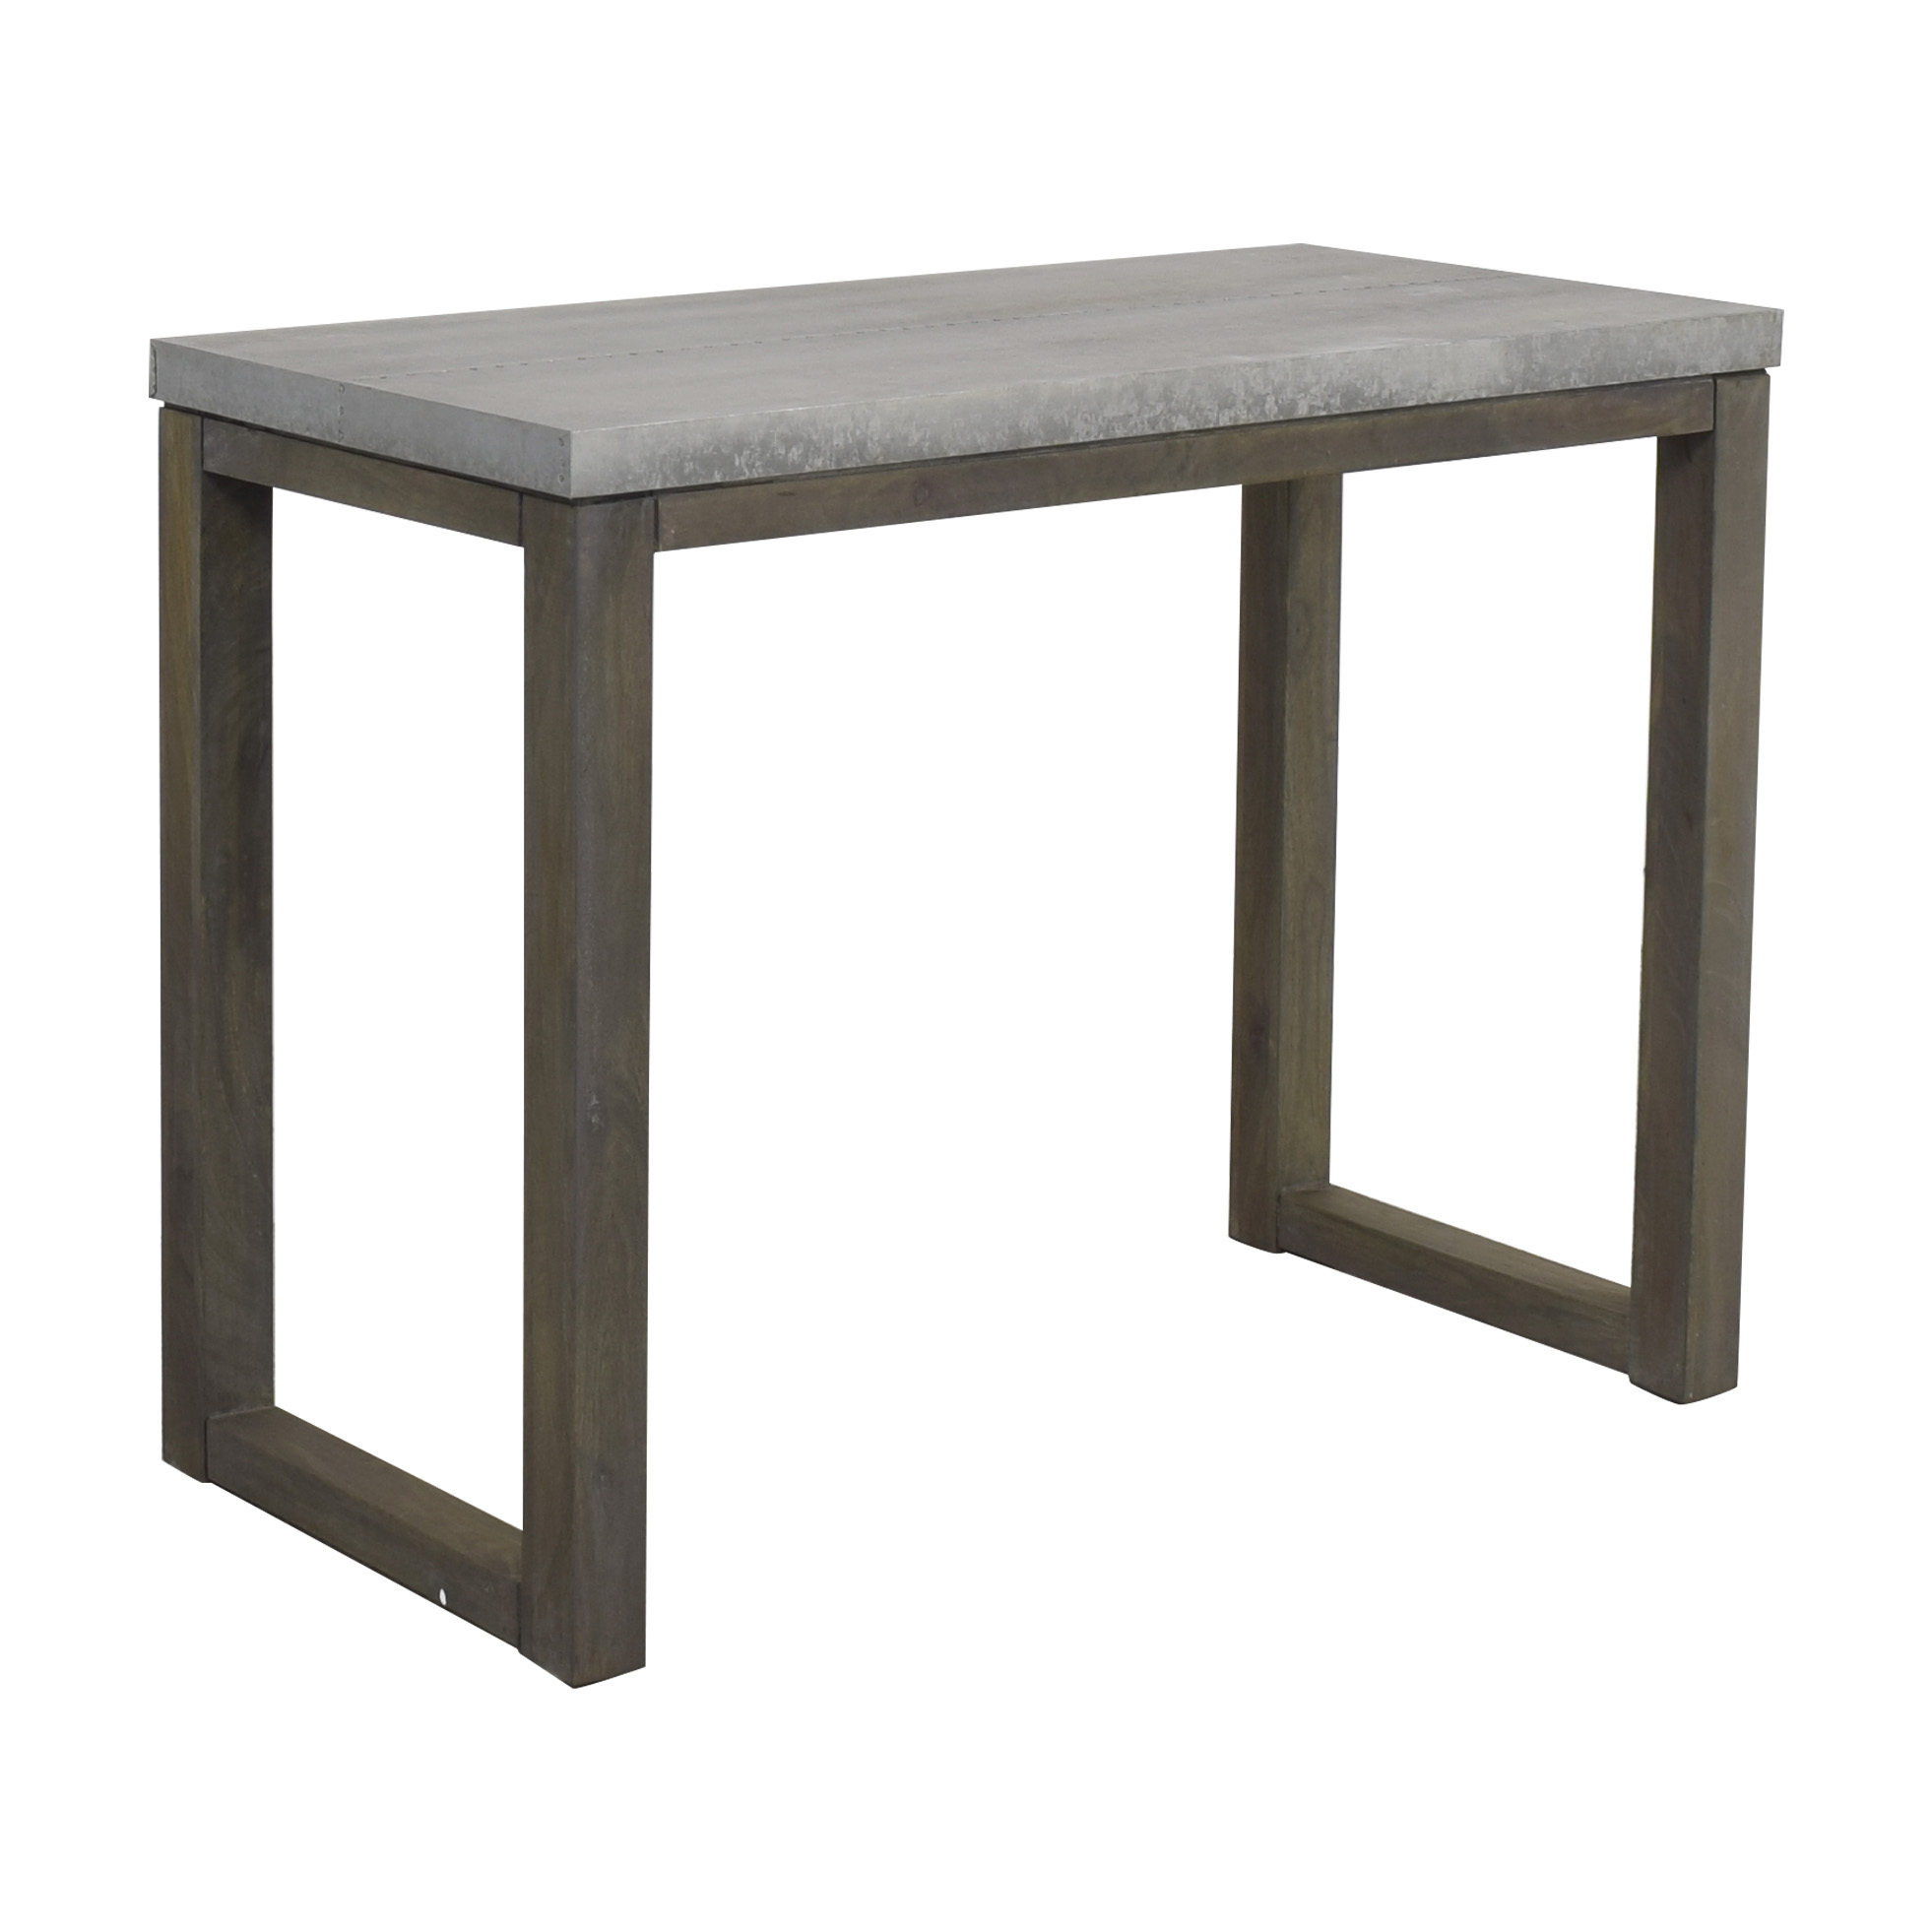 CB2 CB2 Stern Counter Table grey